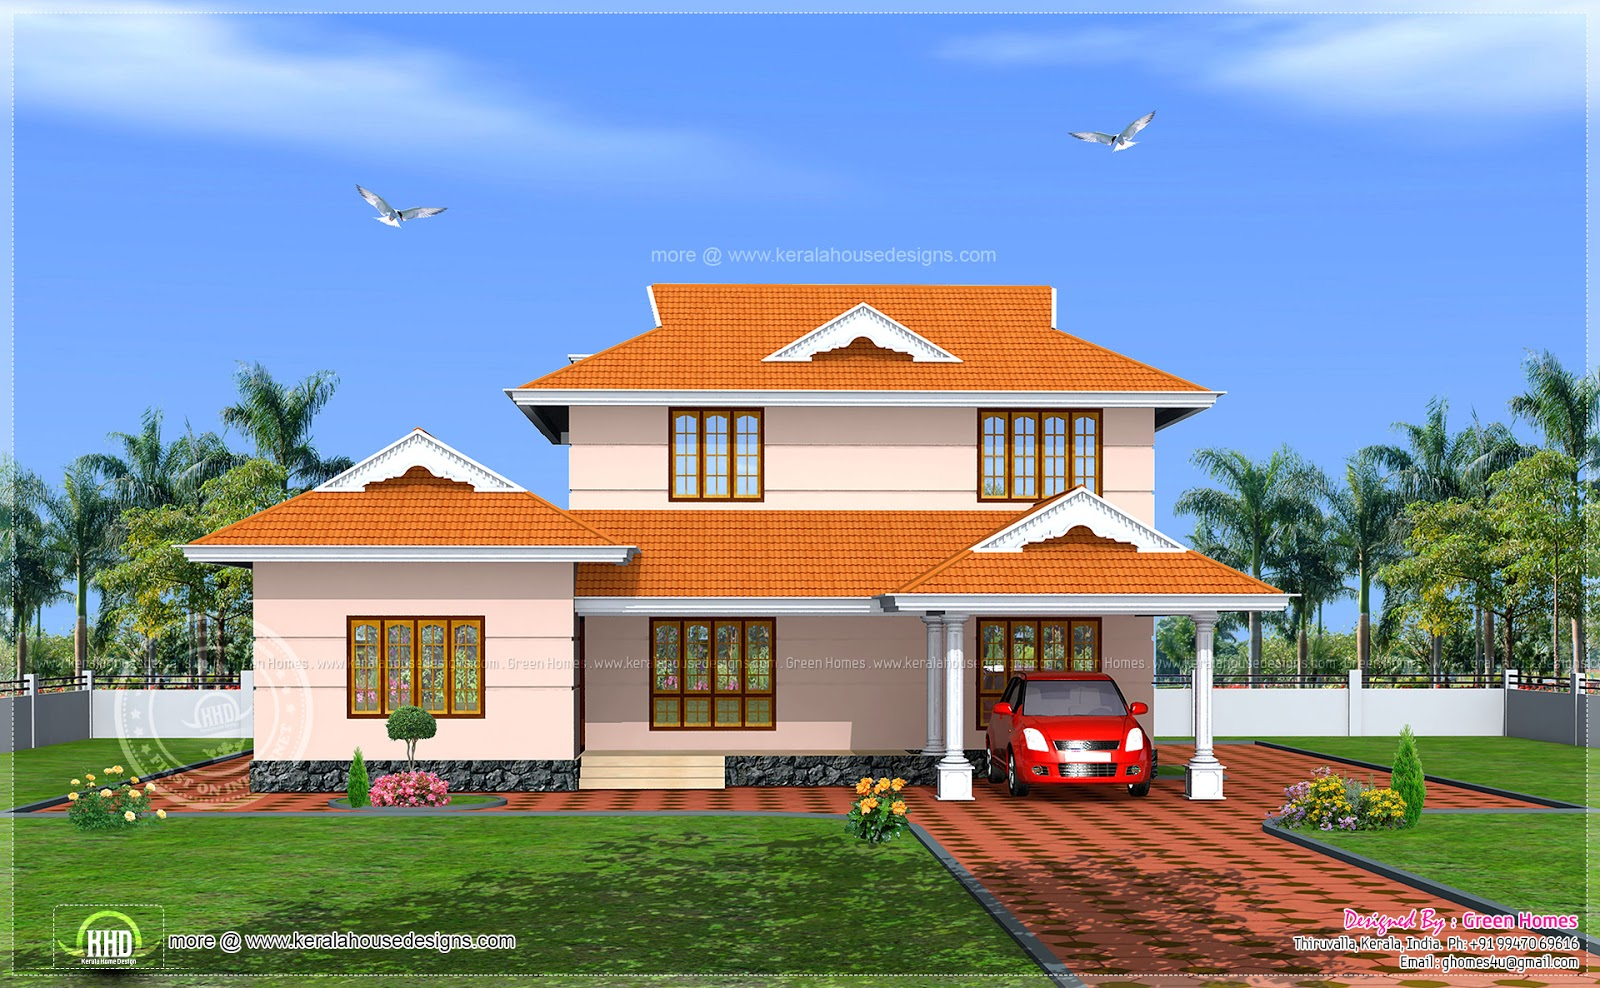 Home design kerala model house q for Architect home plans